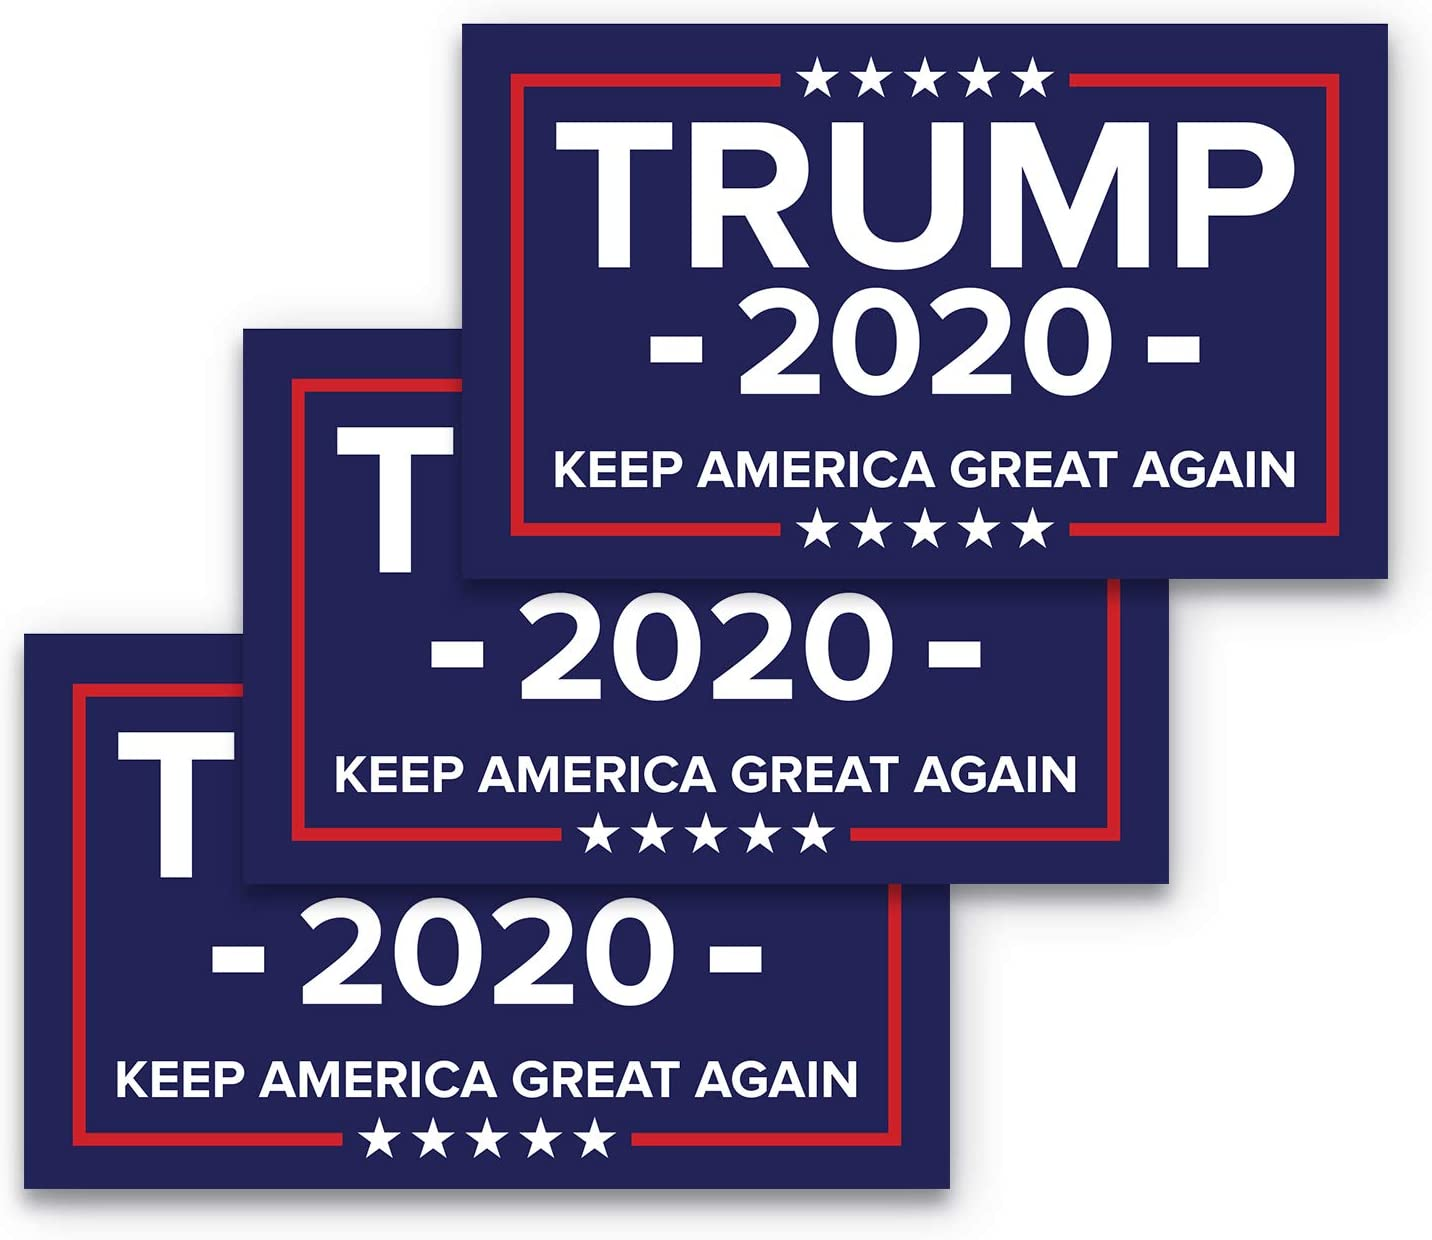 3x5 Keep America Great Again Bumper Sticker 3-Pack Made with Durable, Waterproof Materials, Donald Trump Bumper Sticker, MAGA Bumper Sticker, Republican Bumper Sticker